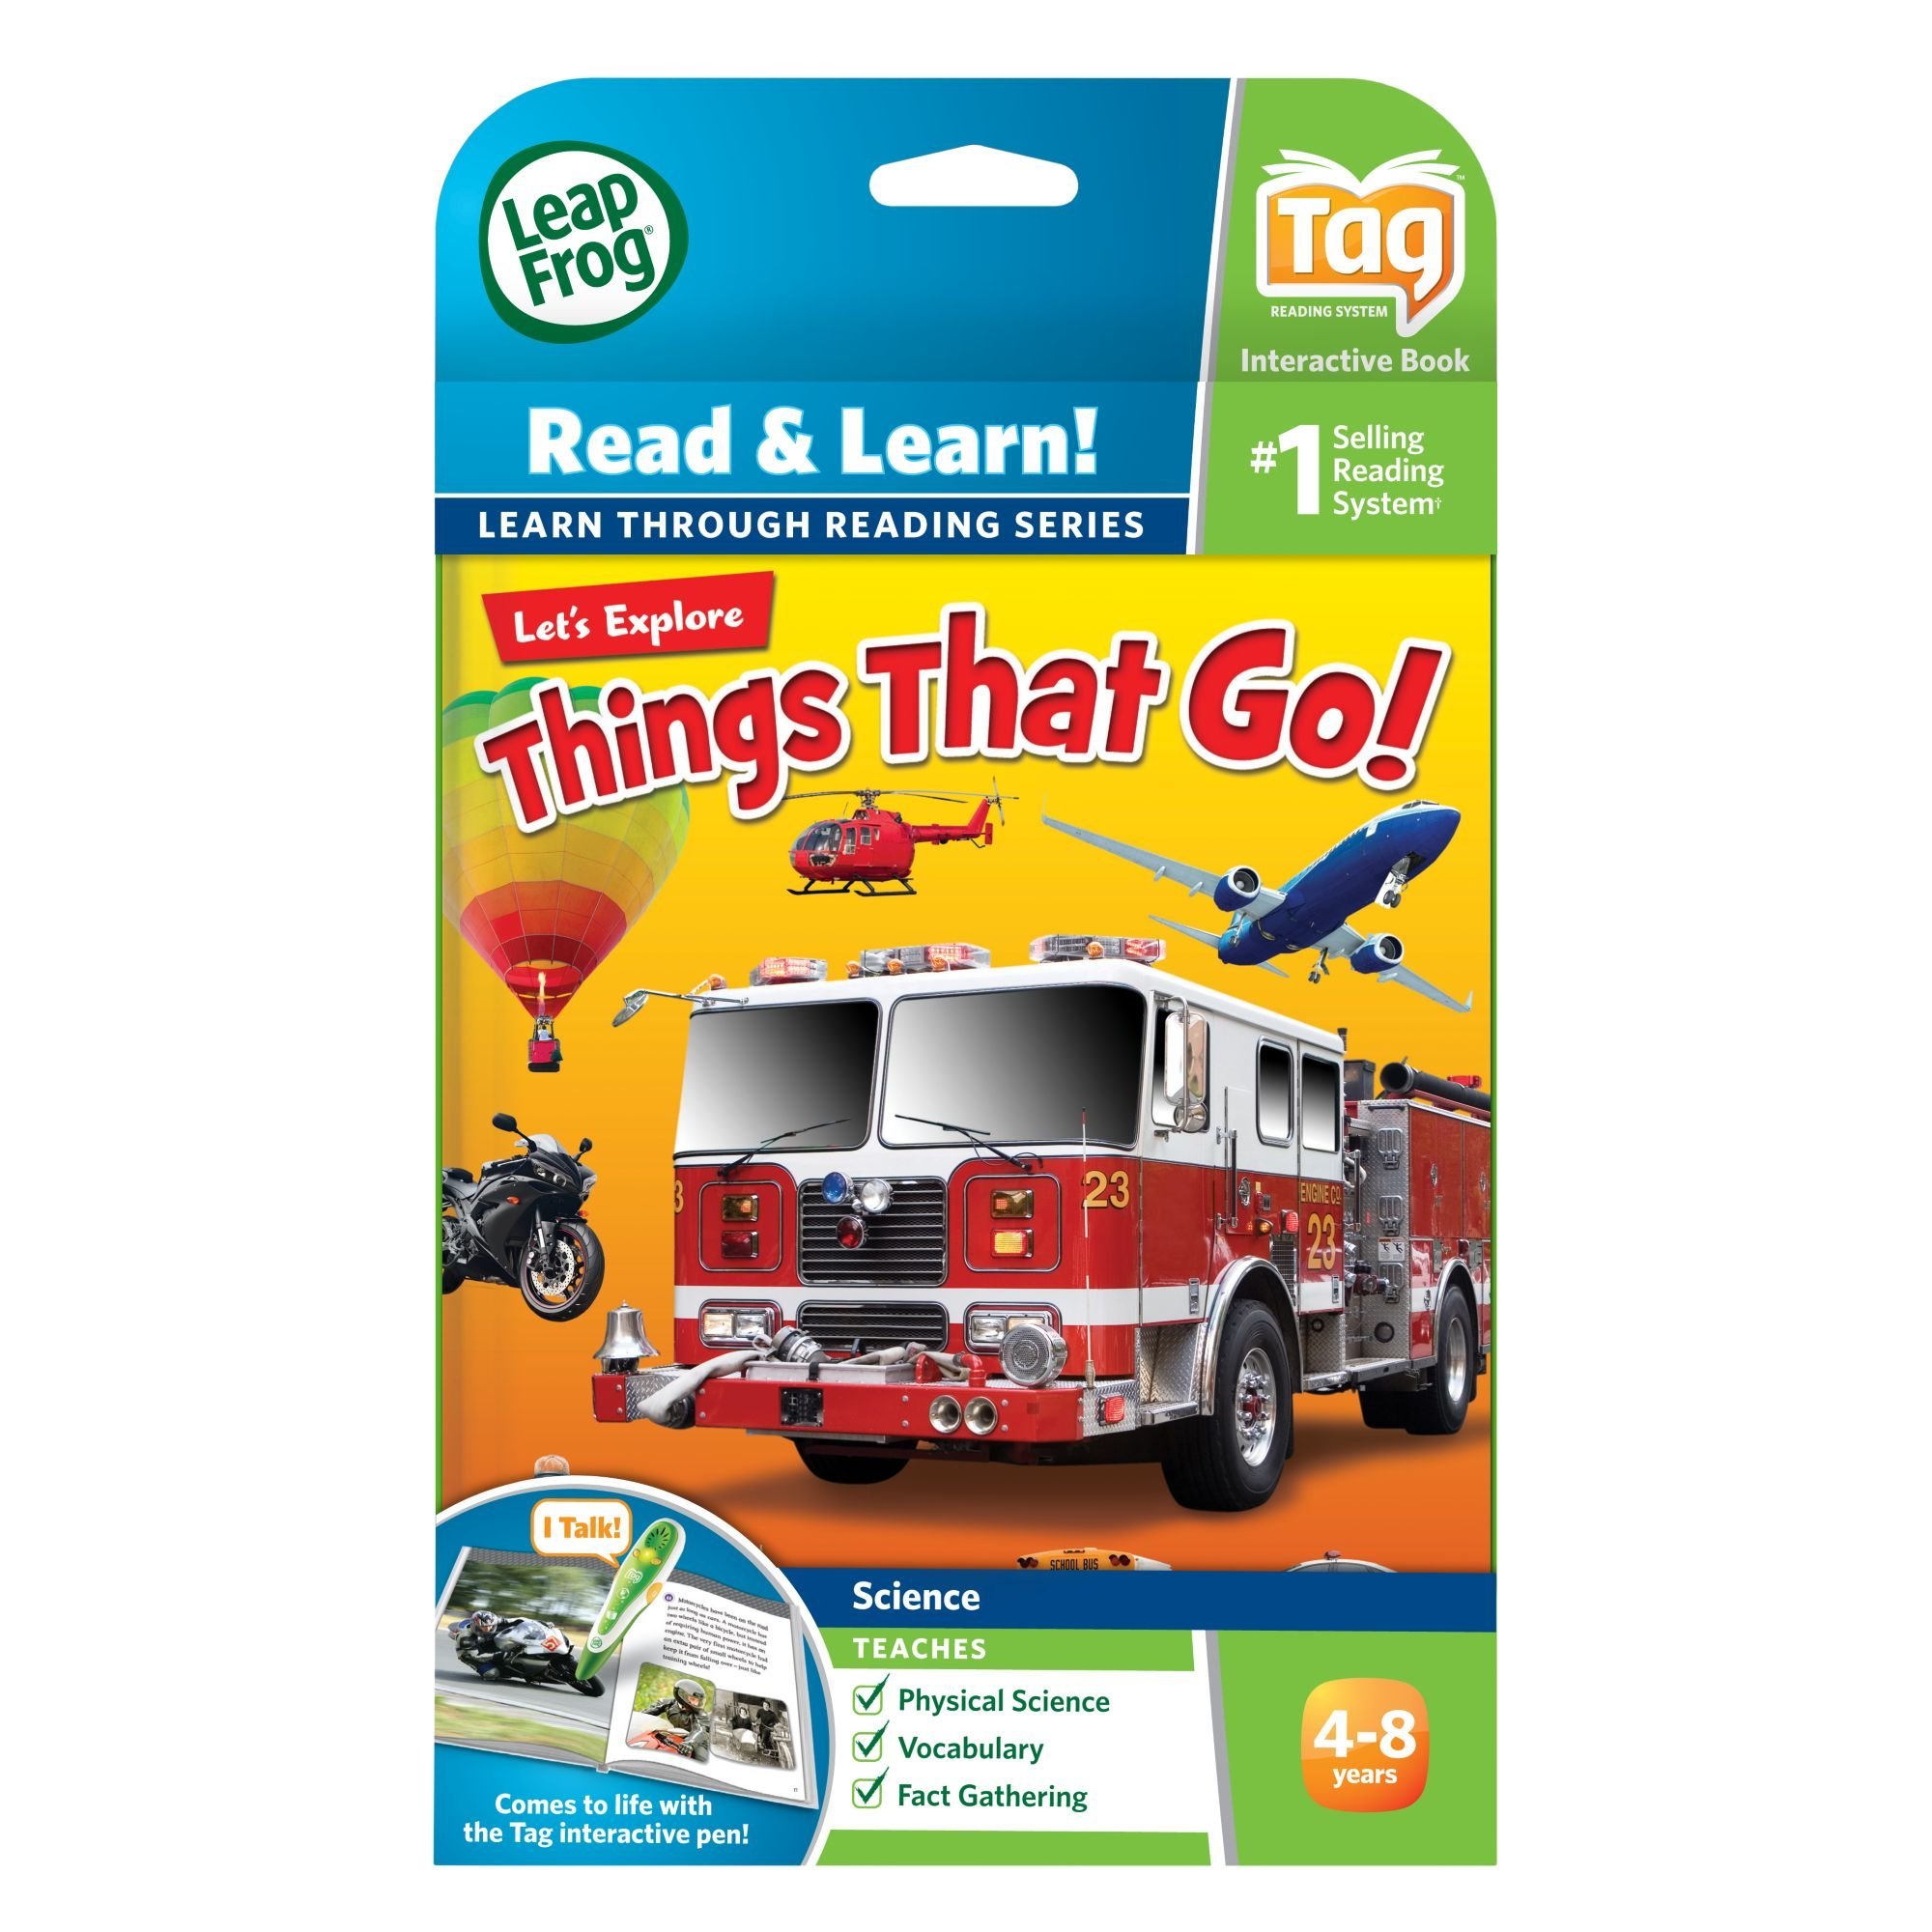 LeapFrog LeapReader Book: Let's Explore Things That Go! (works with Tag) by LeapFrog (Image #4)